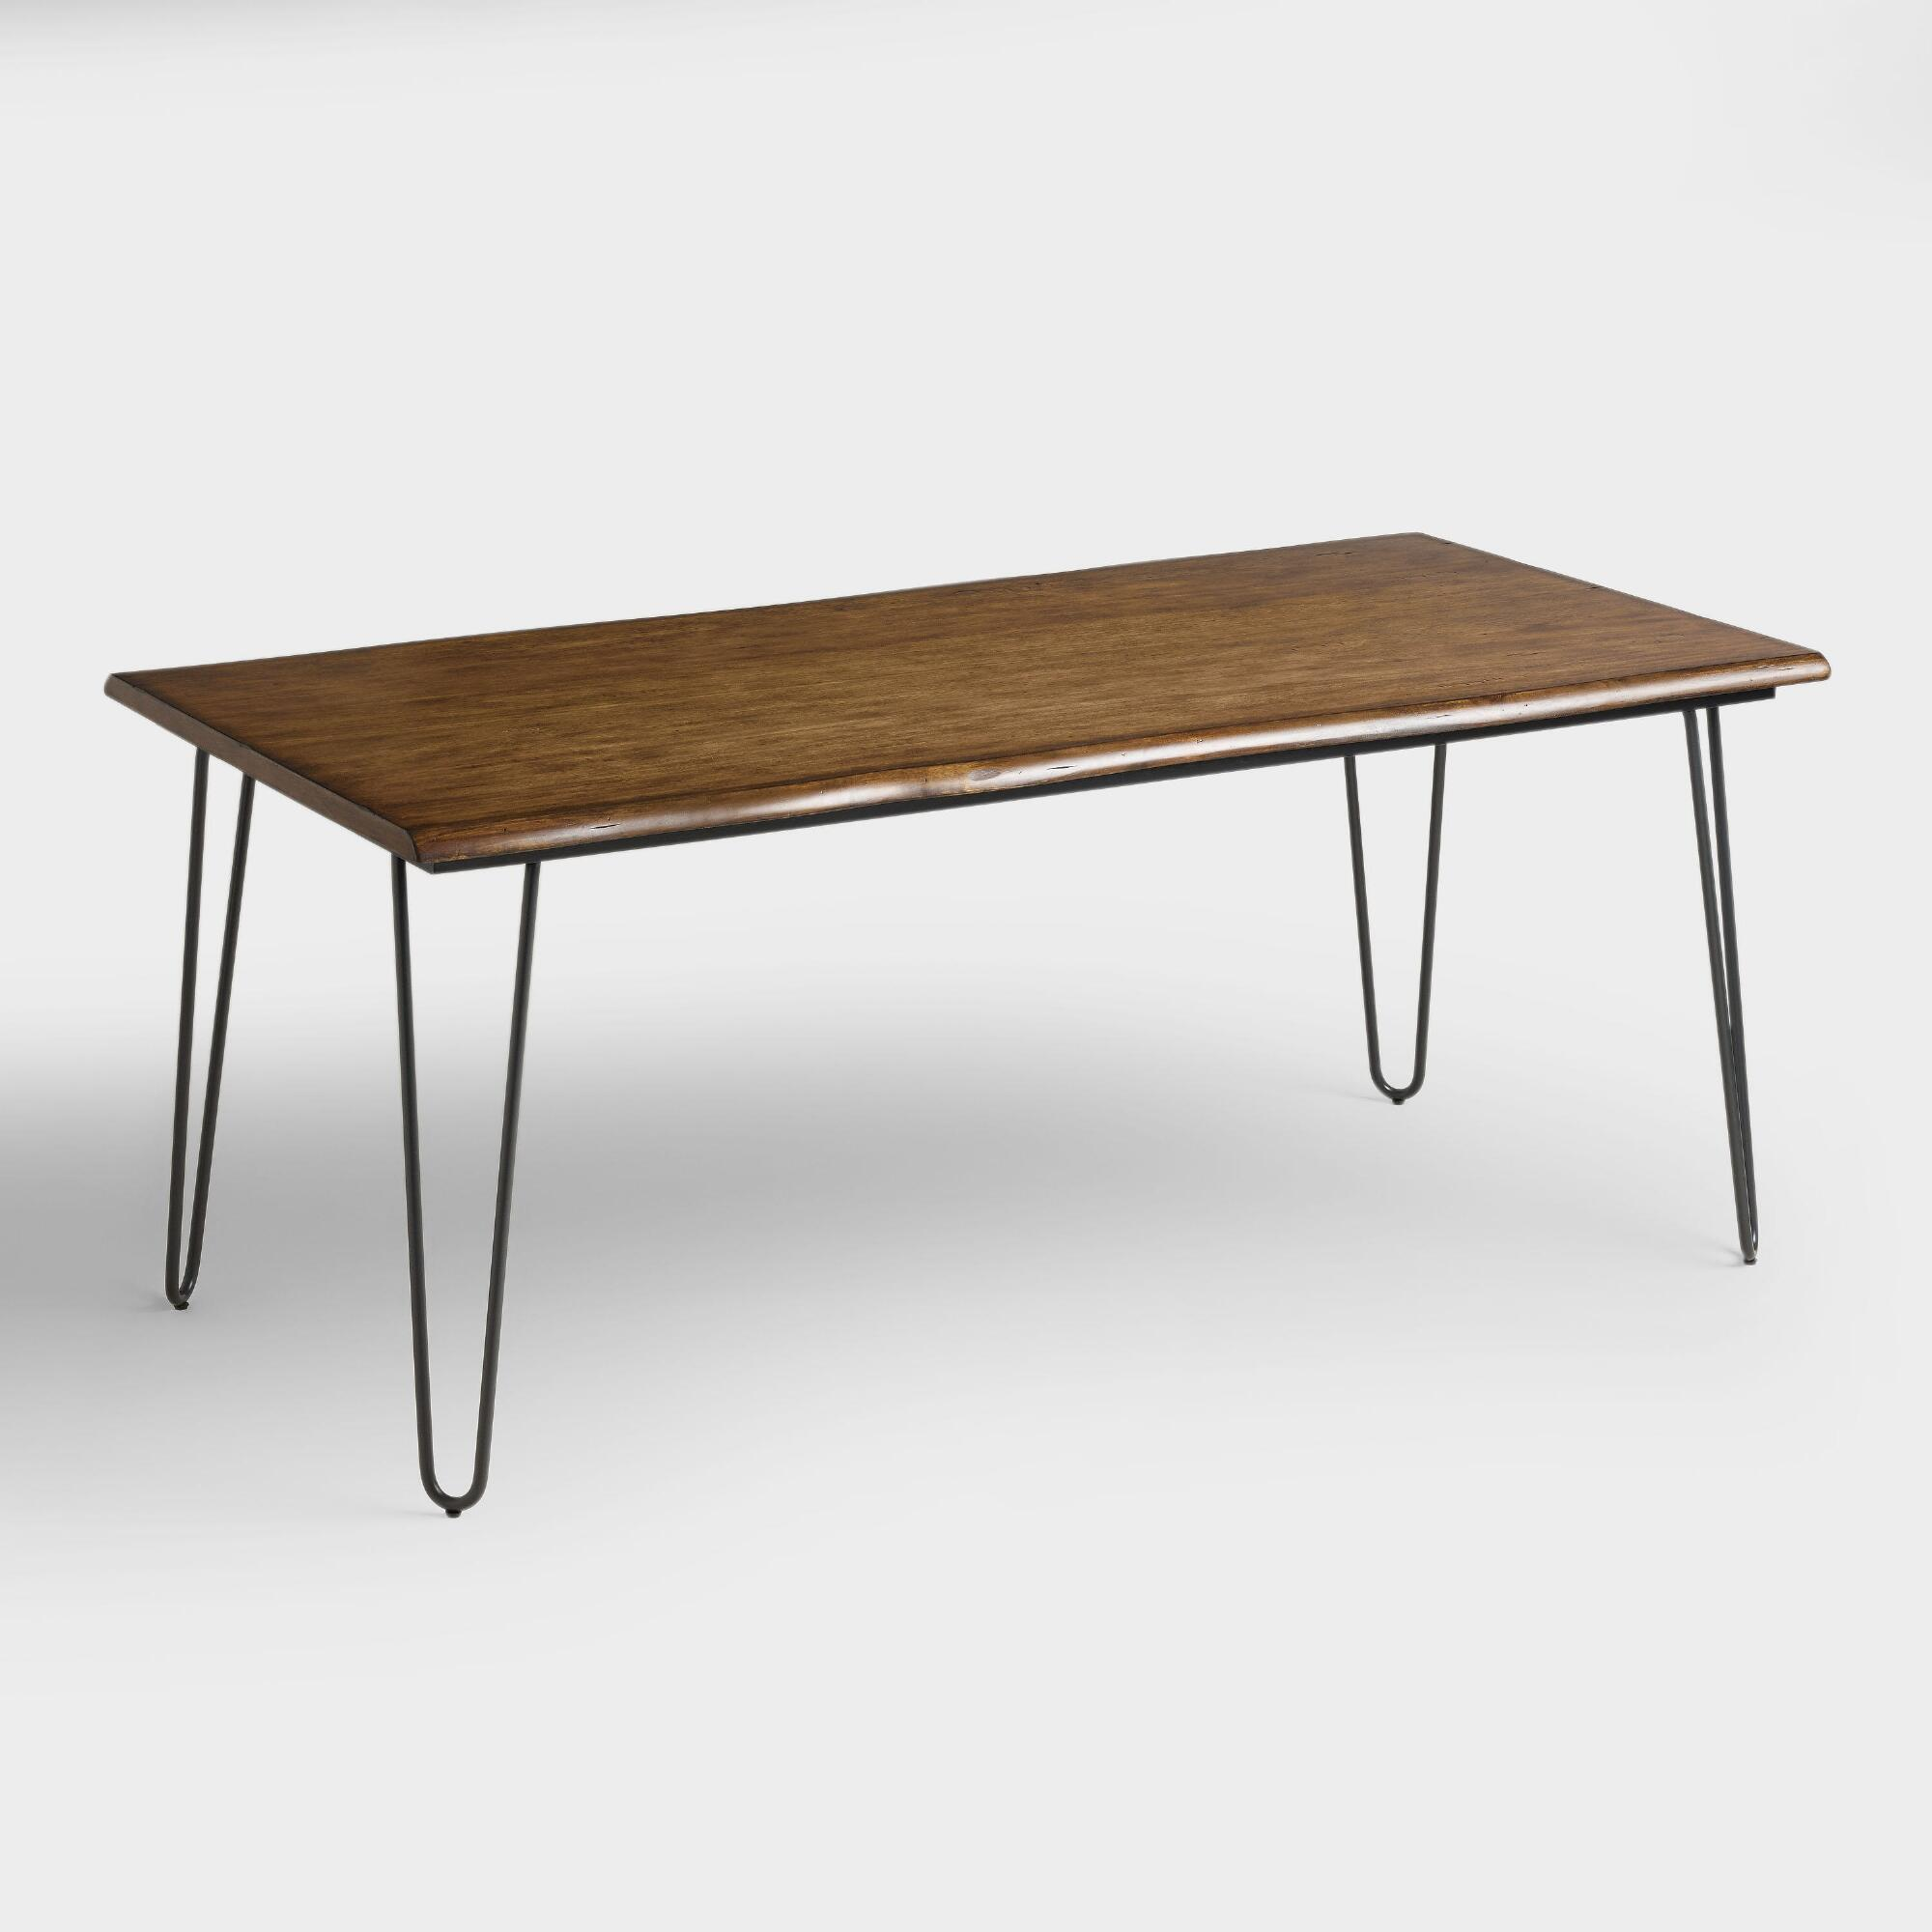 Wood Flynn Hairpin Dining Table: Brown - Metal by World Market